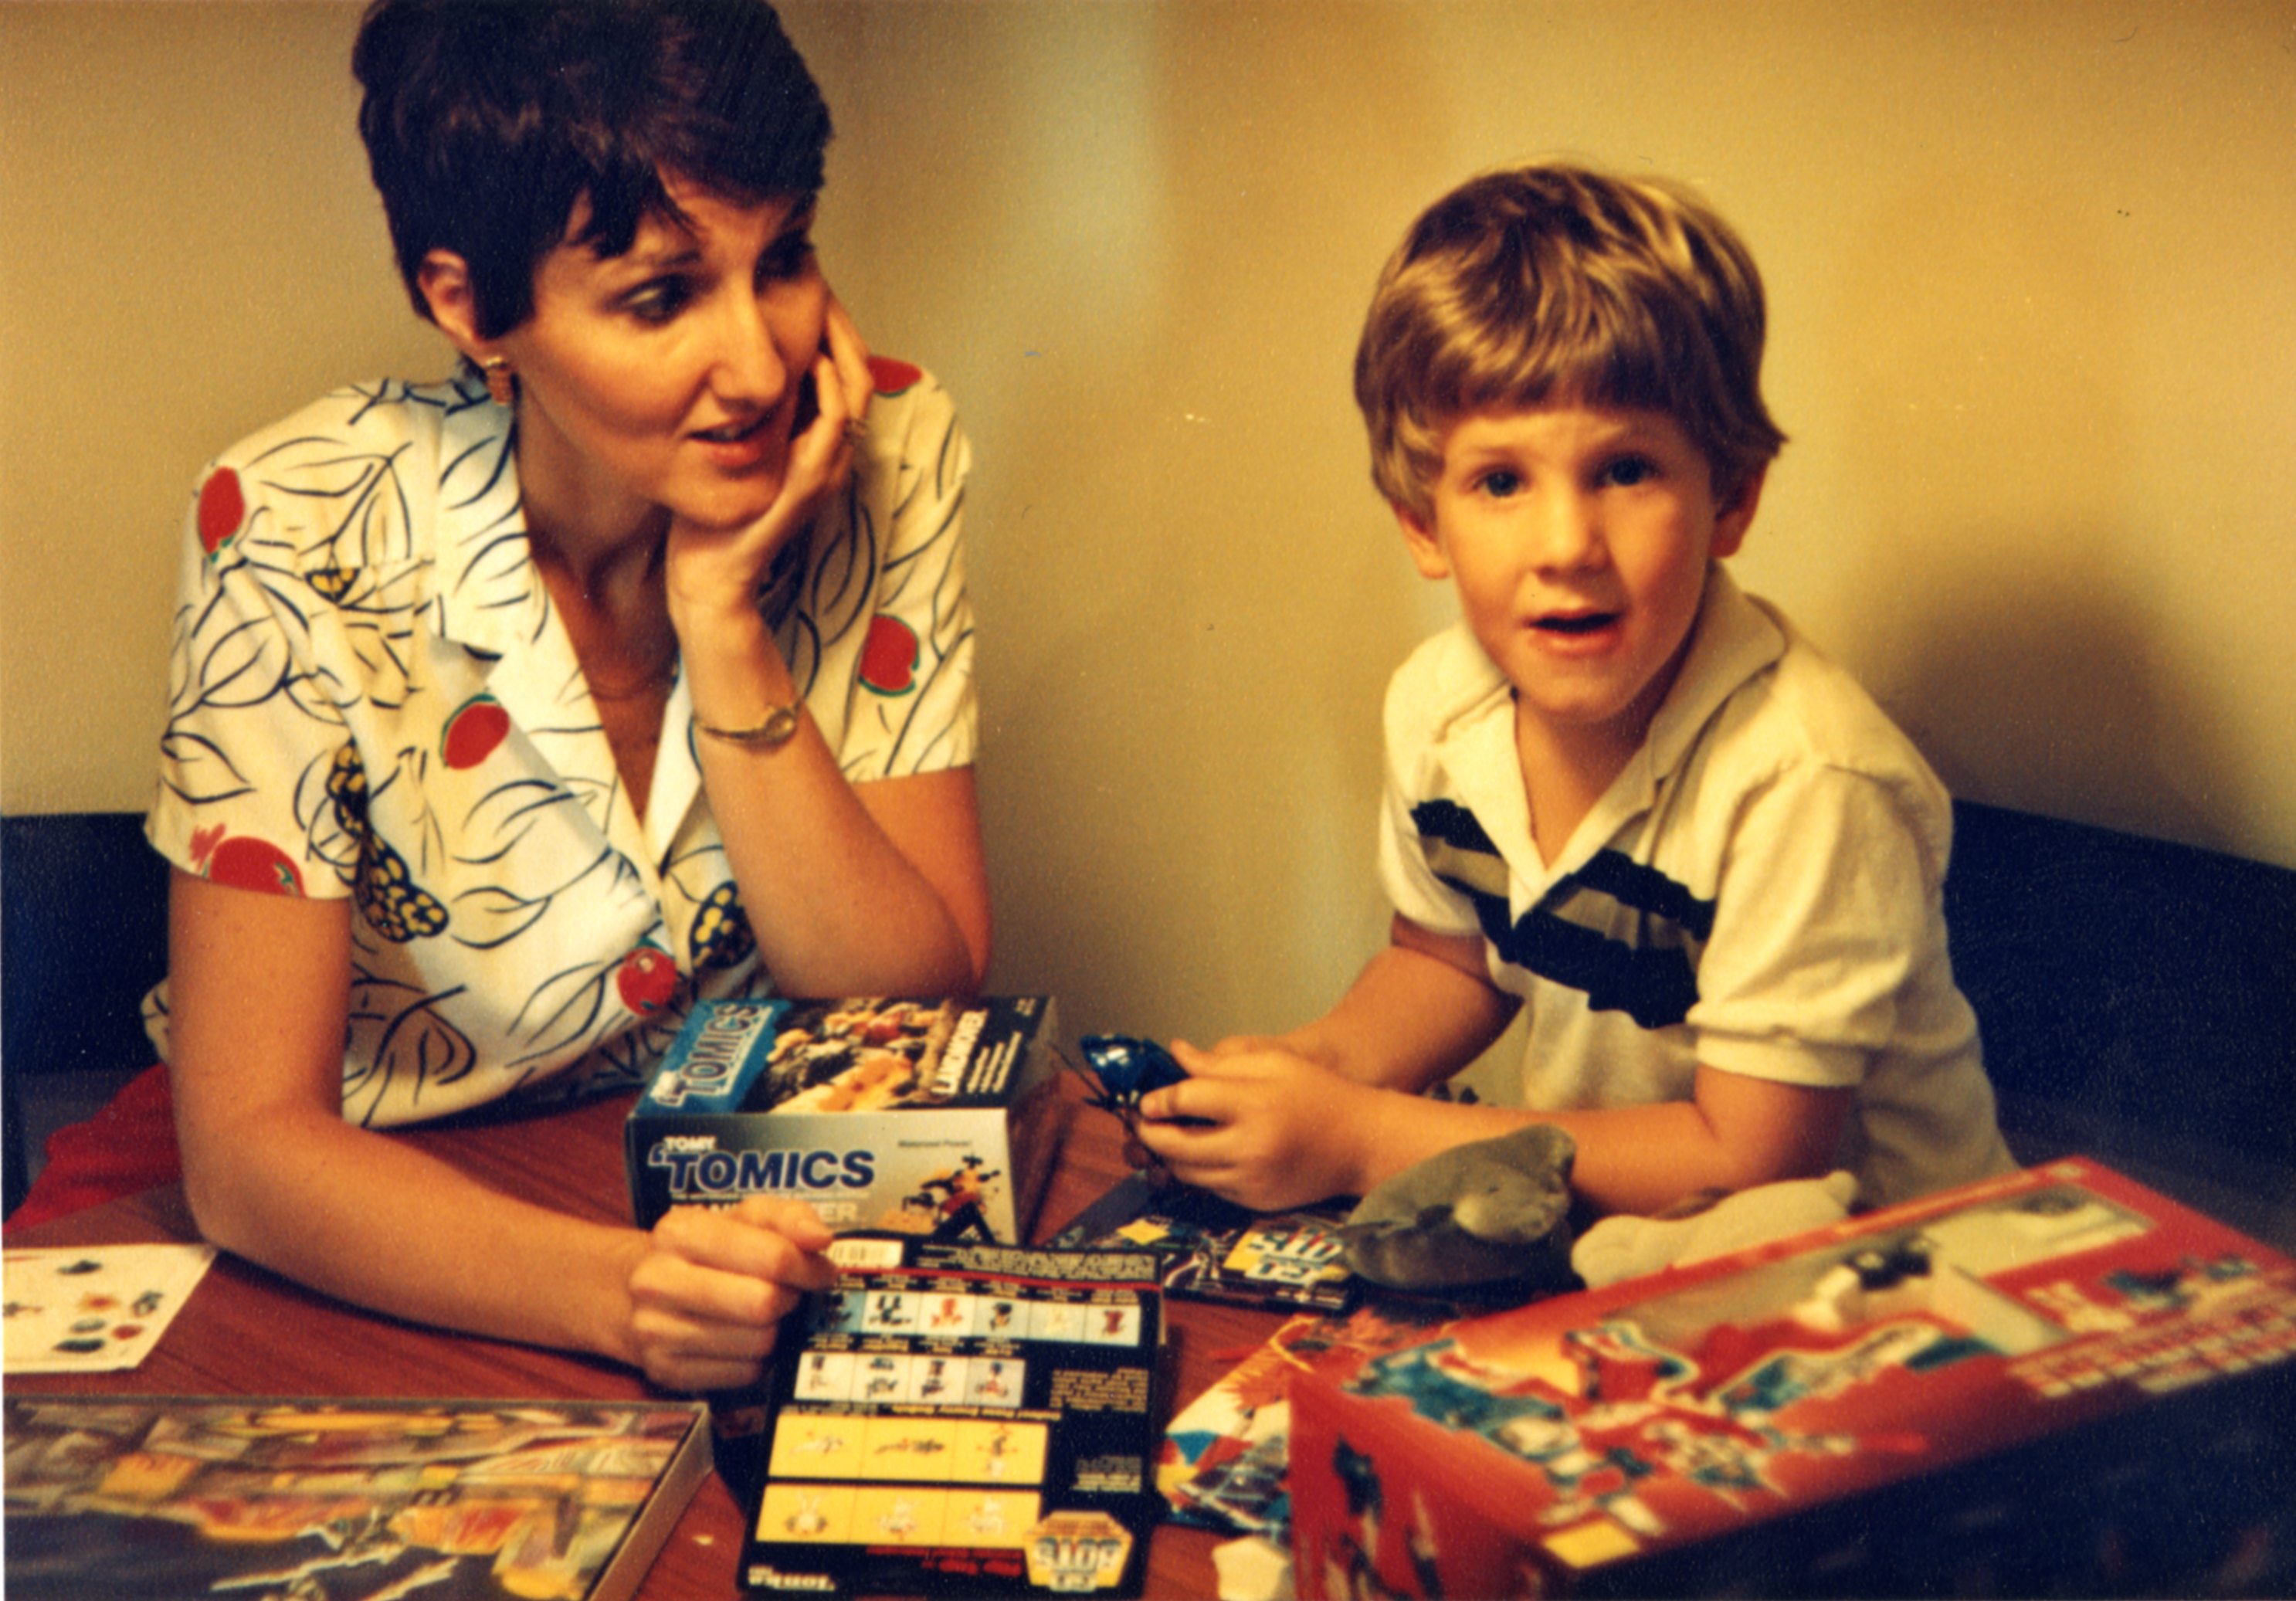 Sue Klebold and her youngest son. (Photo courtesy of Sue Klebold)